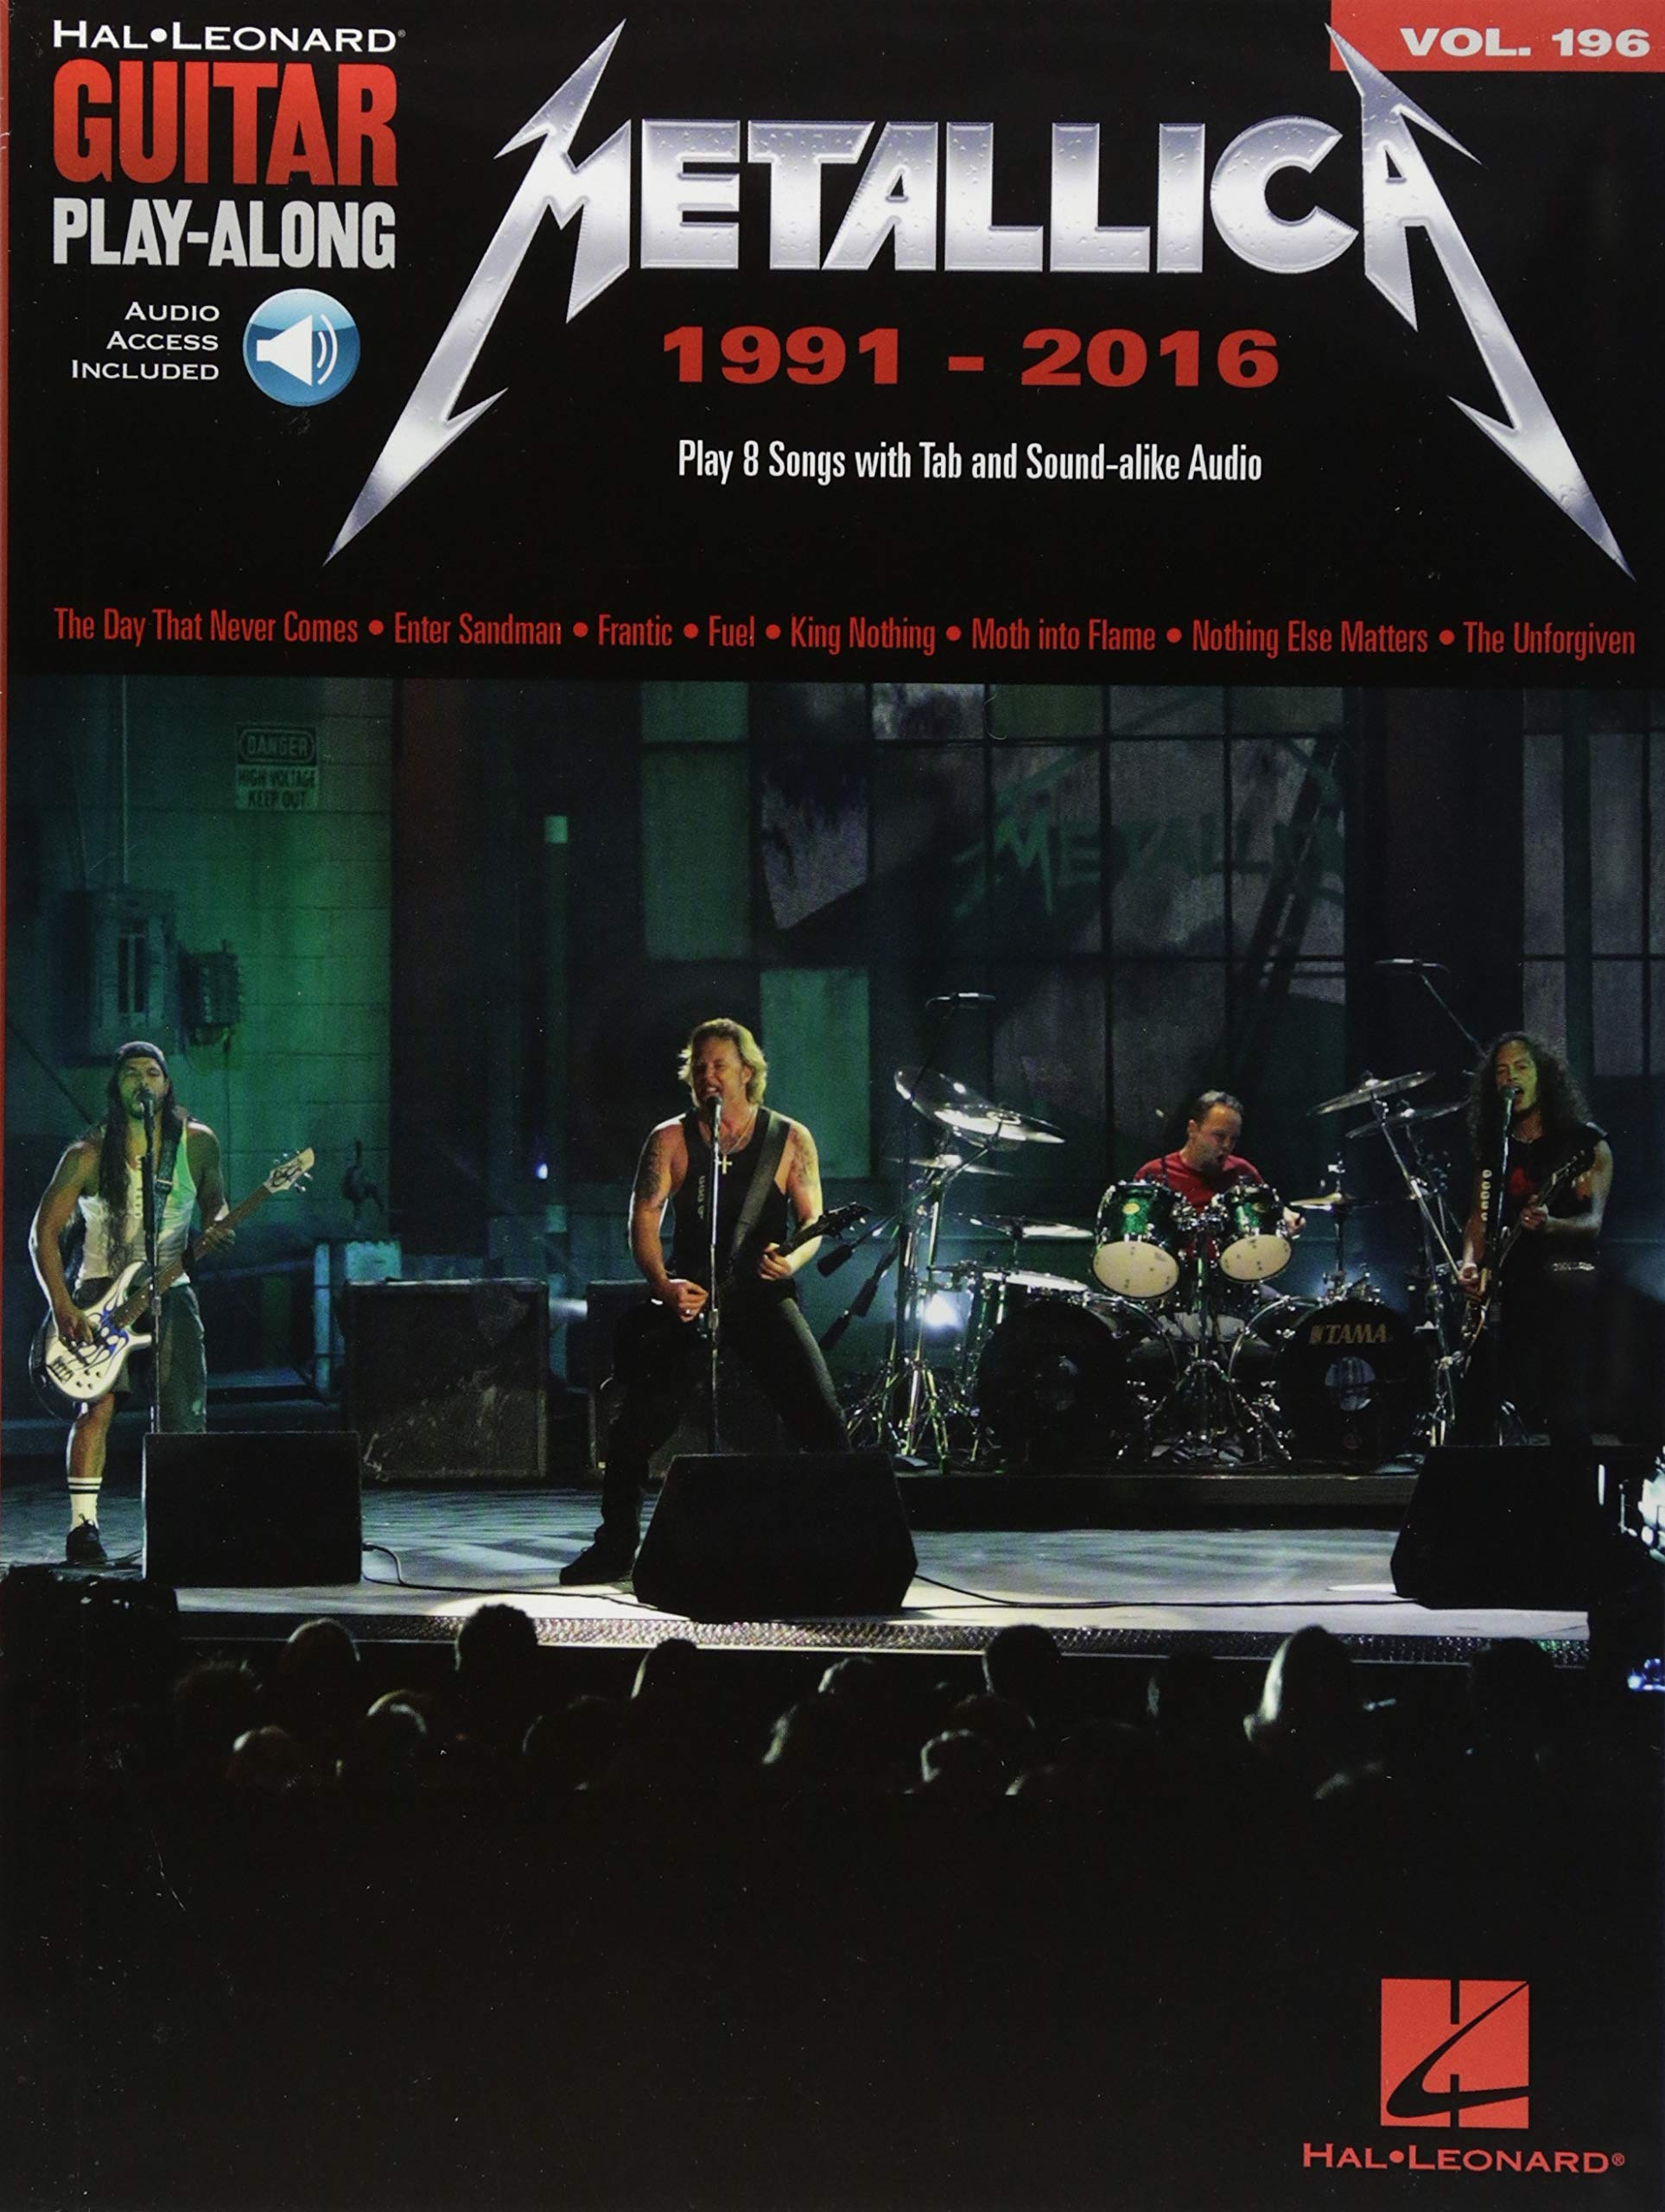 Guitar Play-Along Volume 196: Metallica 1991-2016 Book/Online ...